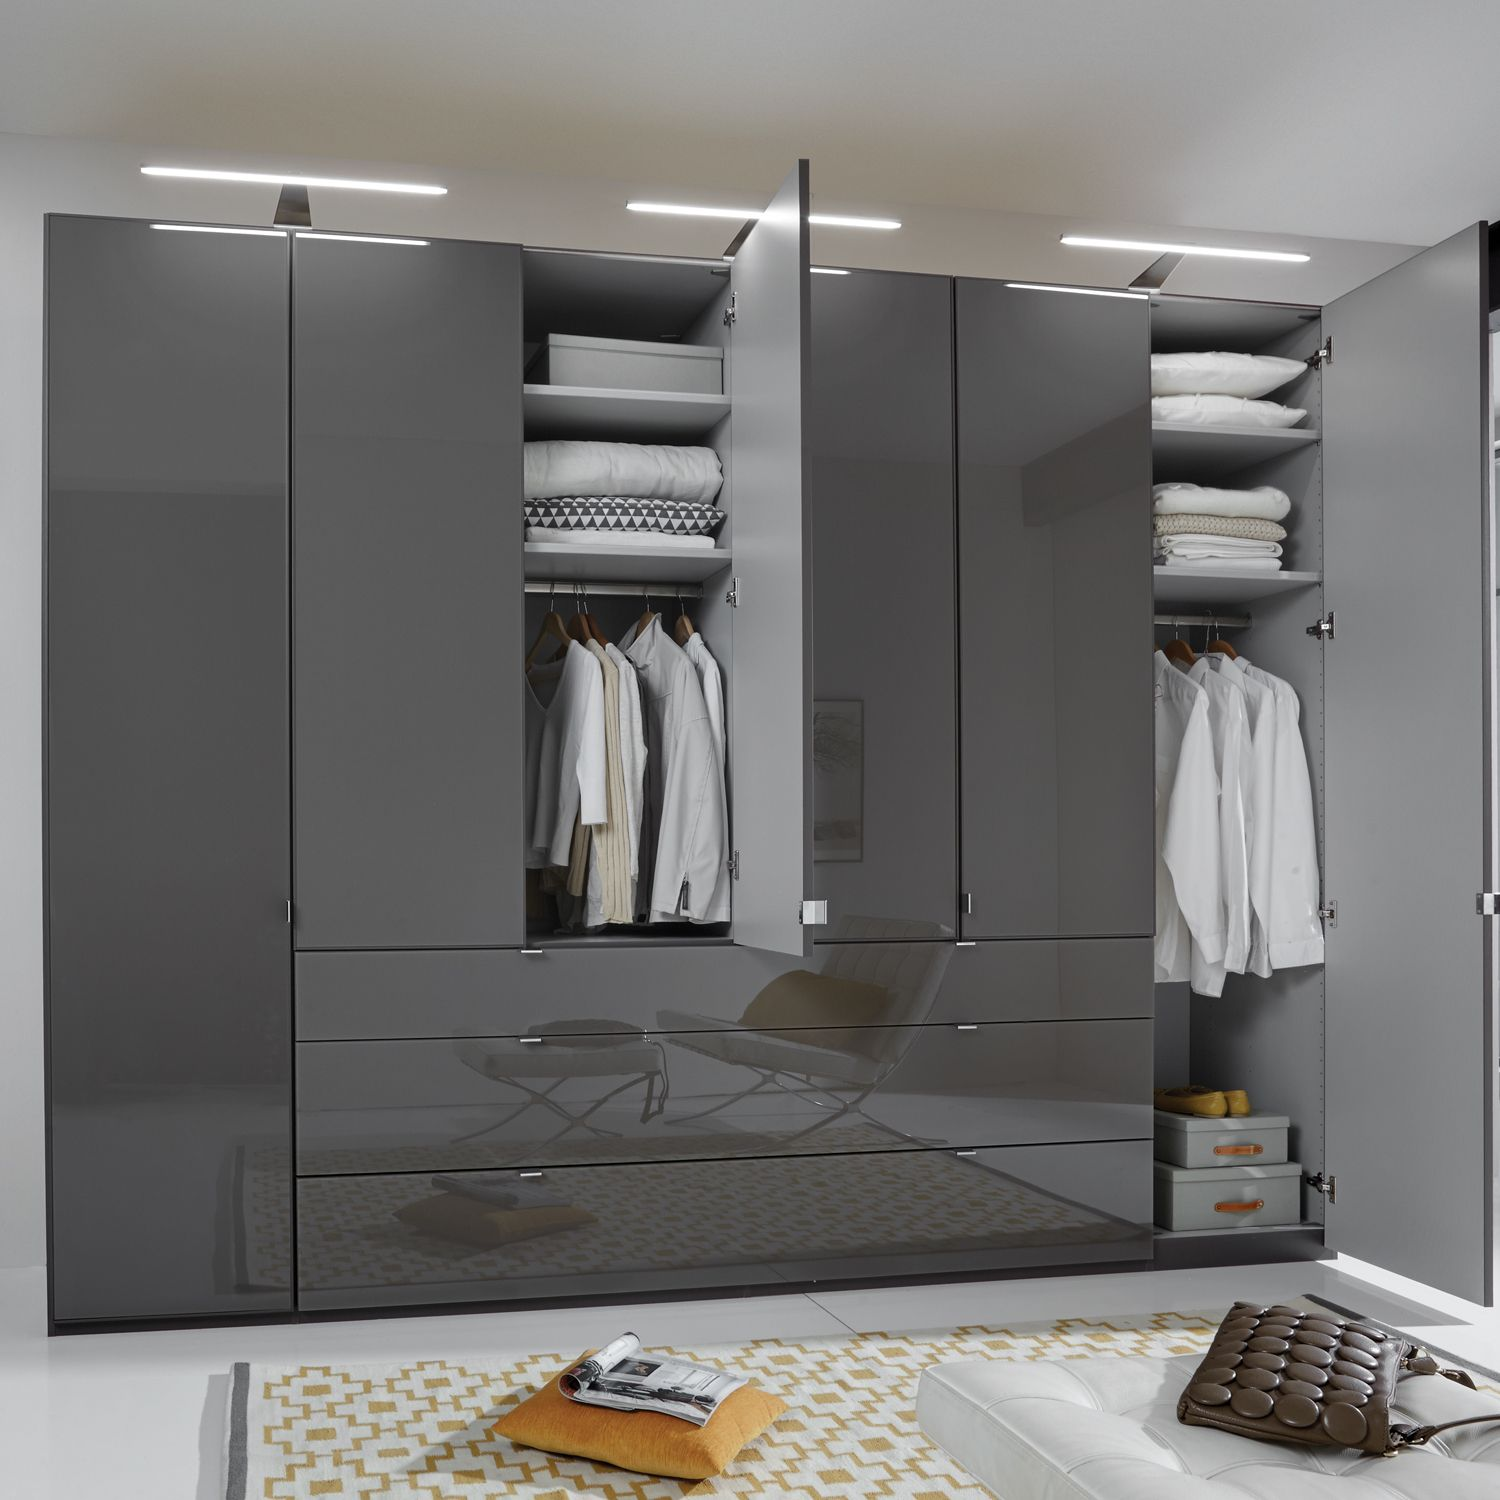 armoire sale closet rack wardrobe to cabinet storage closets furniture wardrobes cheap buy on portable white inexpensive with coat slim where only clothes door for hanging shelves